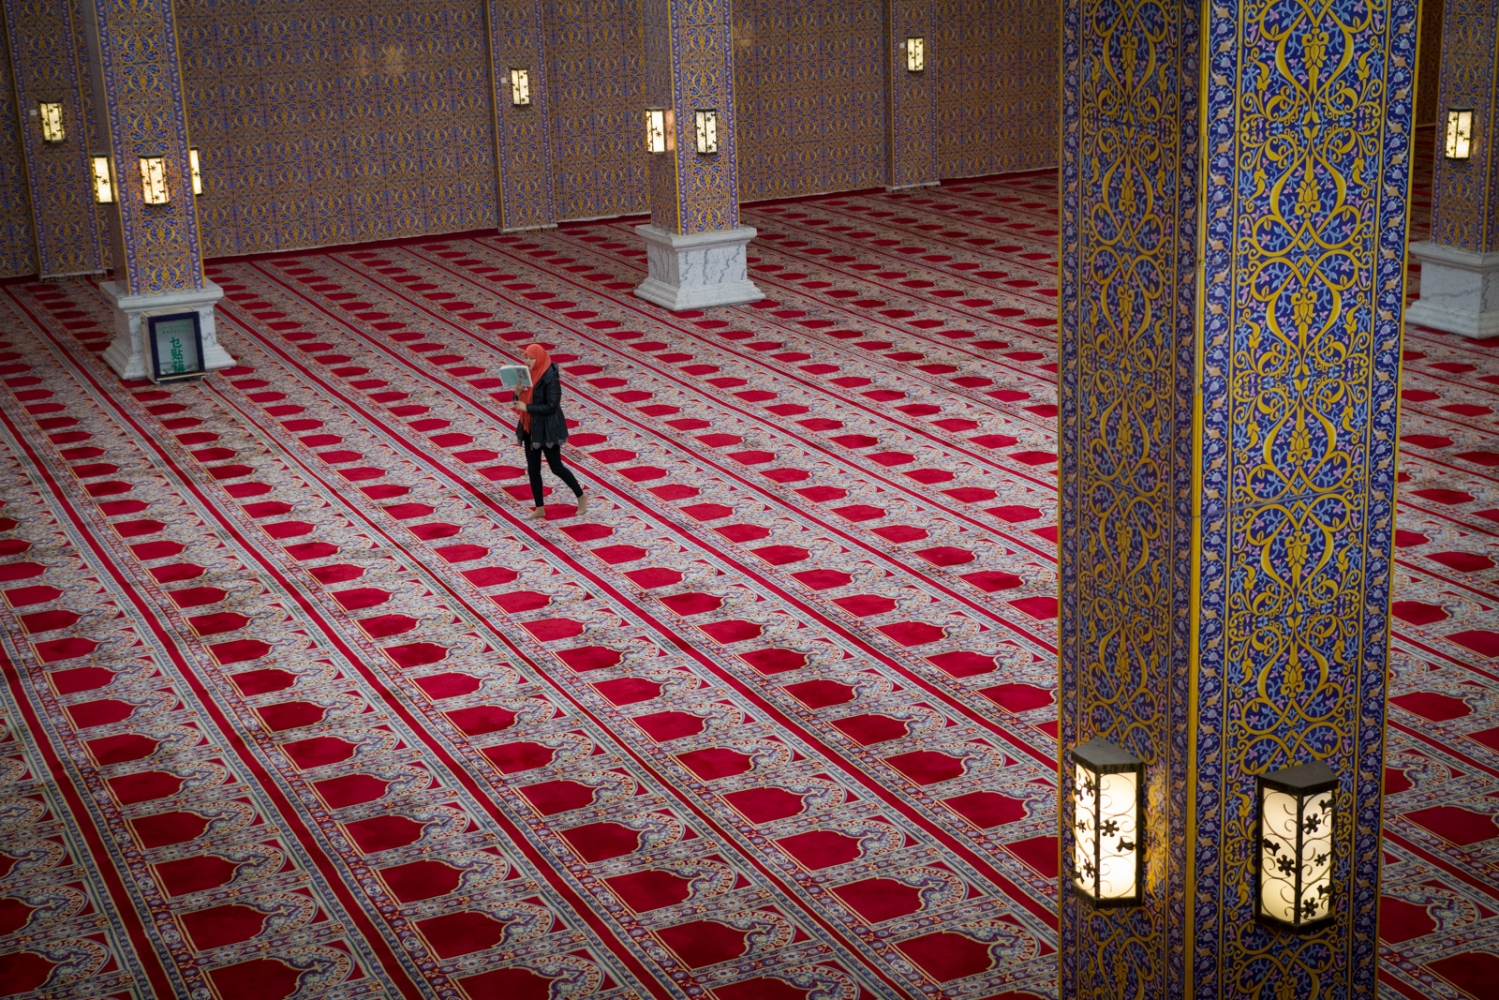 A Hui staffer chants prayers in Arabic as she walks through the main hall of the Golden Palace at the Hui Culture Park outside of Yinchuan, in the autonomous region of Ningxia.